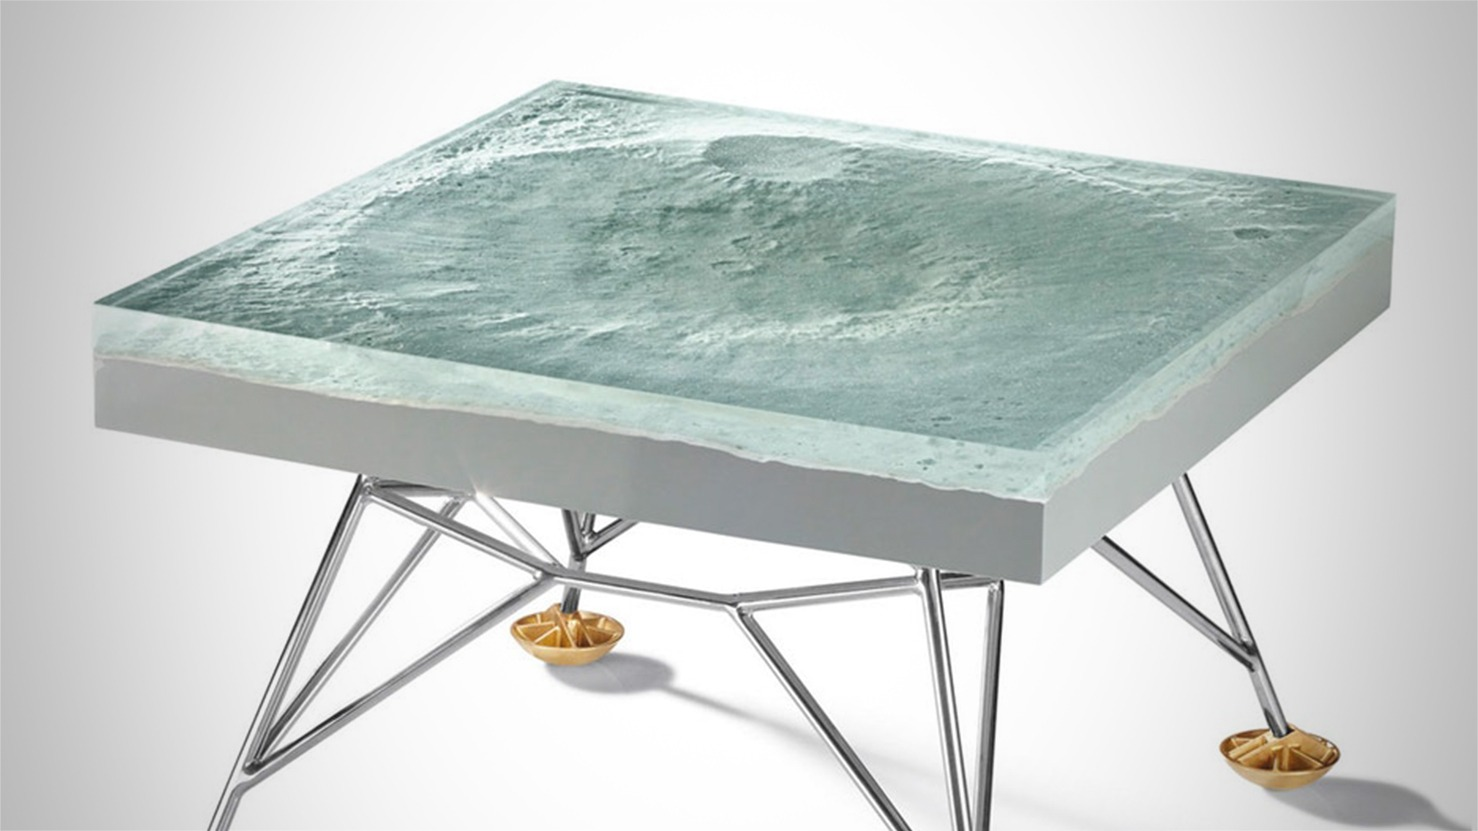 This Table is Made From an Accurate 3D Model of the Moon's Surface